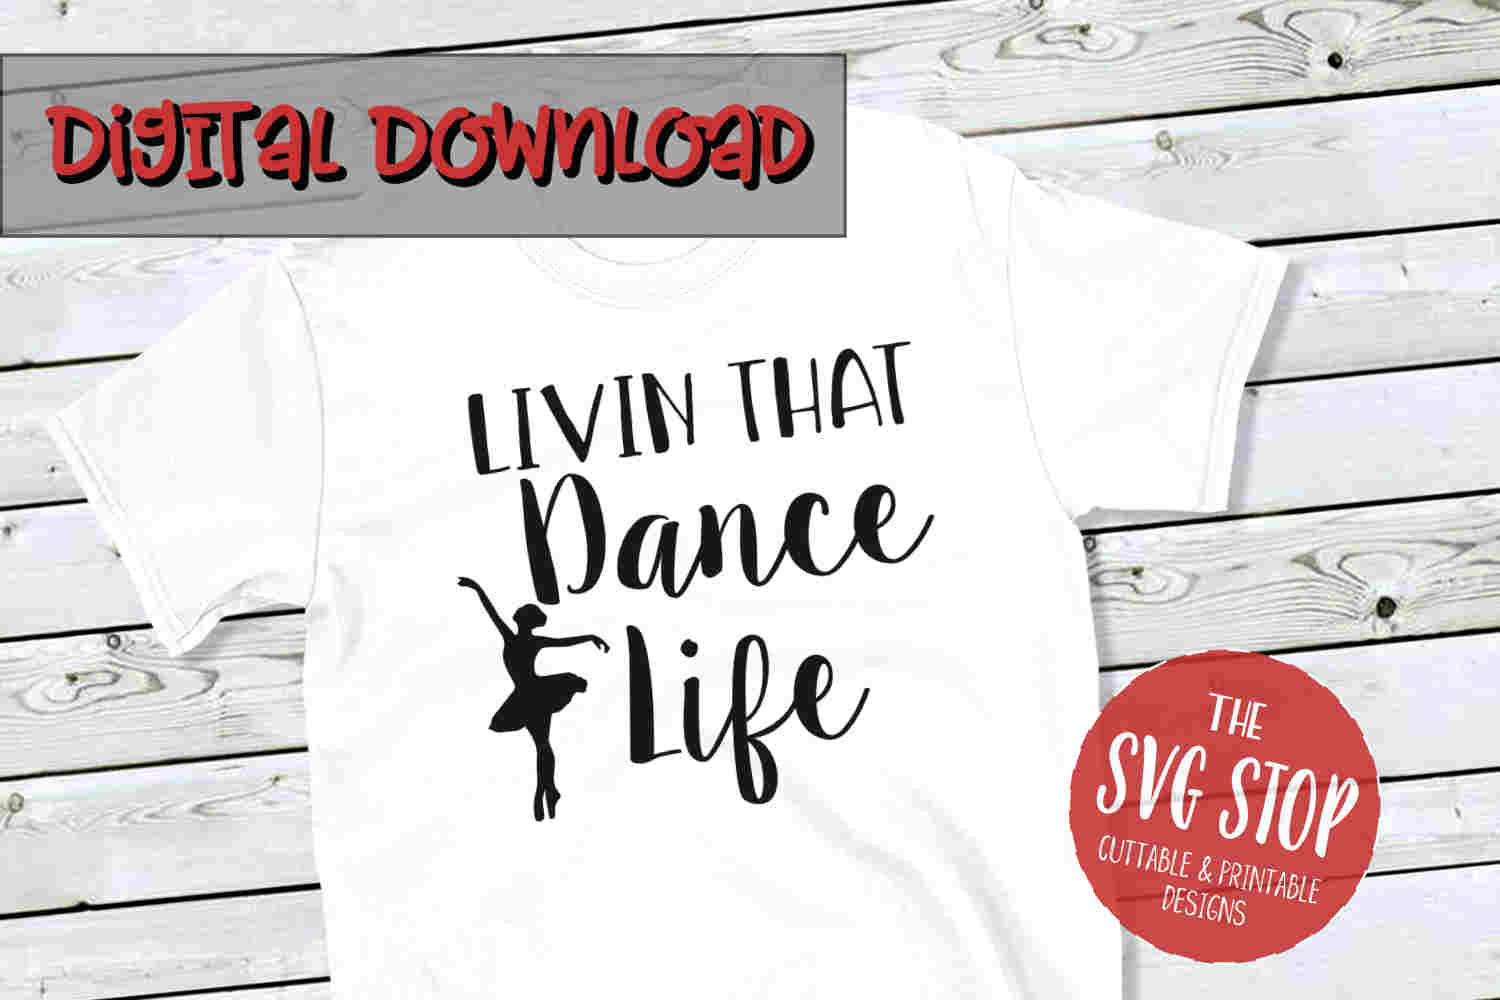 Dance Life -SVG, PNG, DXF example image 1